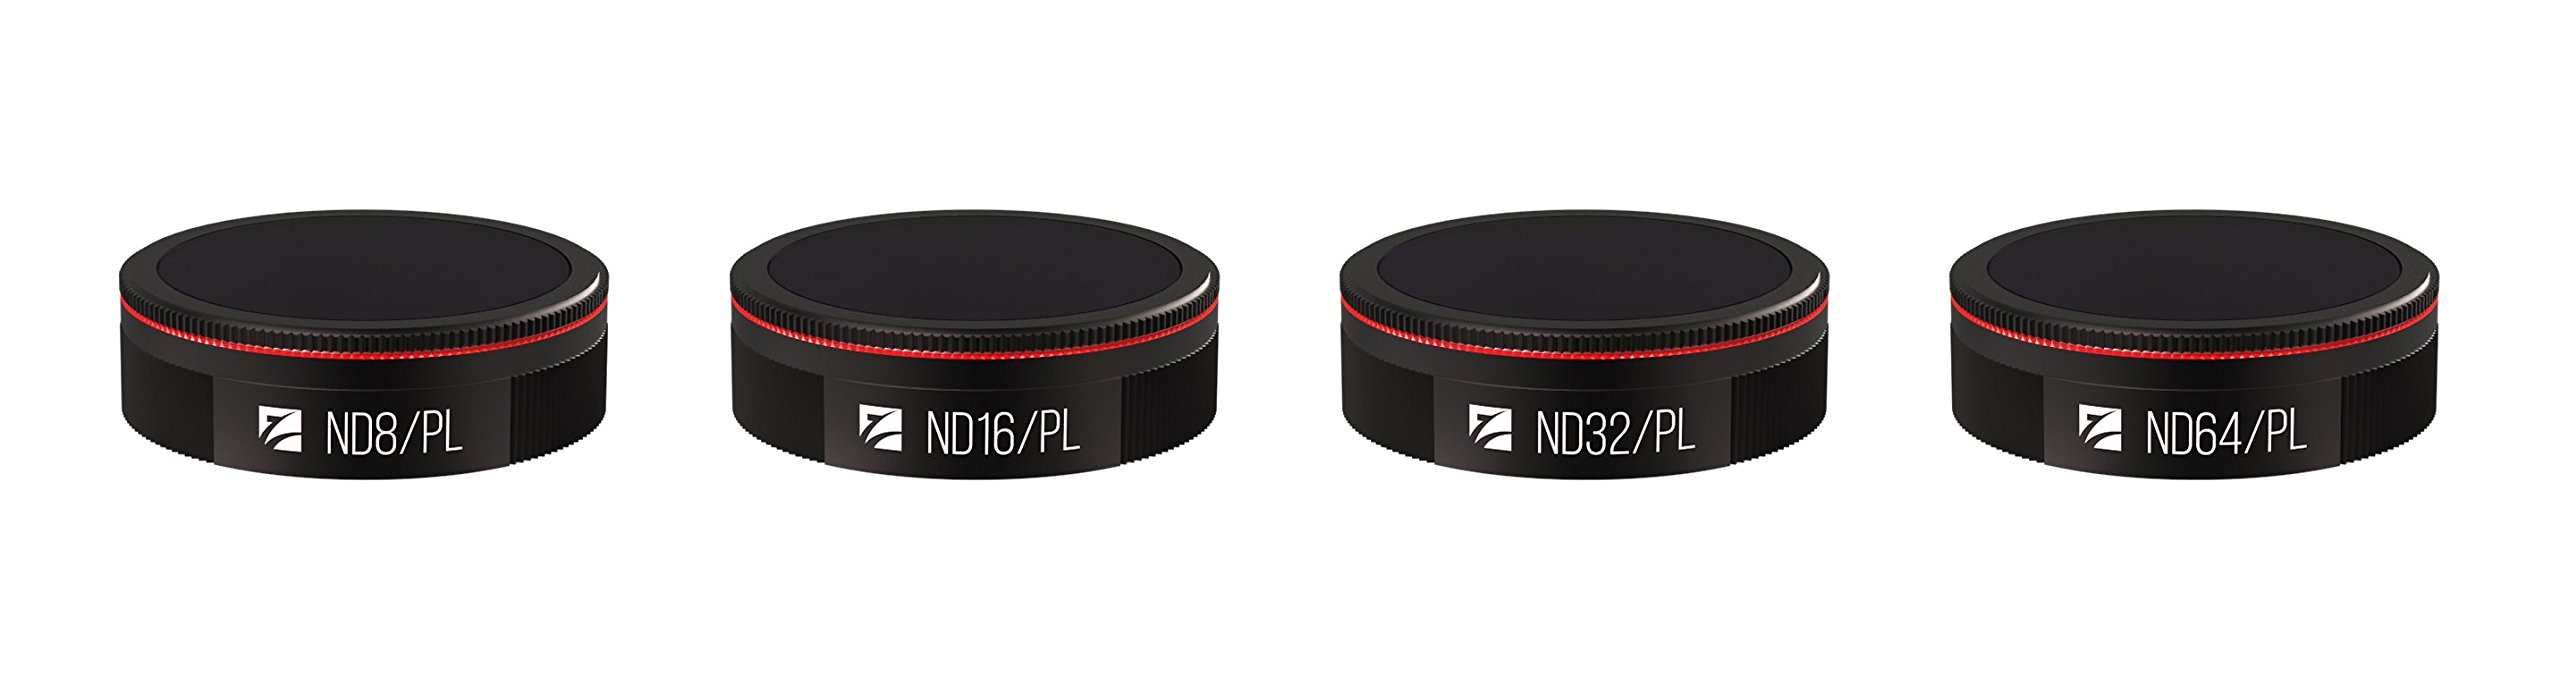 Freewell Bright Day 4 Pack ND8/PL, ND16/PL, ND32/PL, ND64/PL Filters Compatible with Autel Evo by Freewell